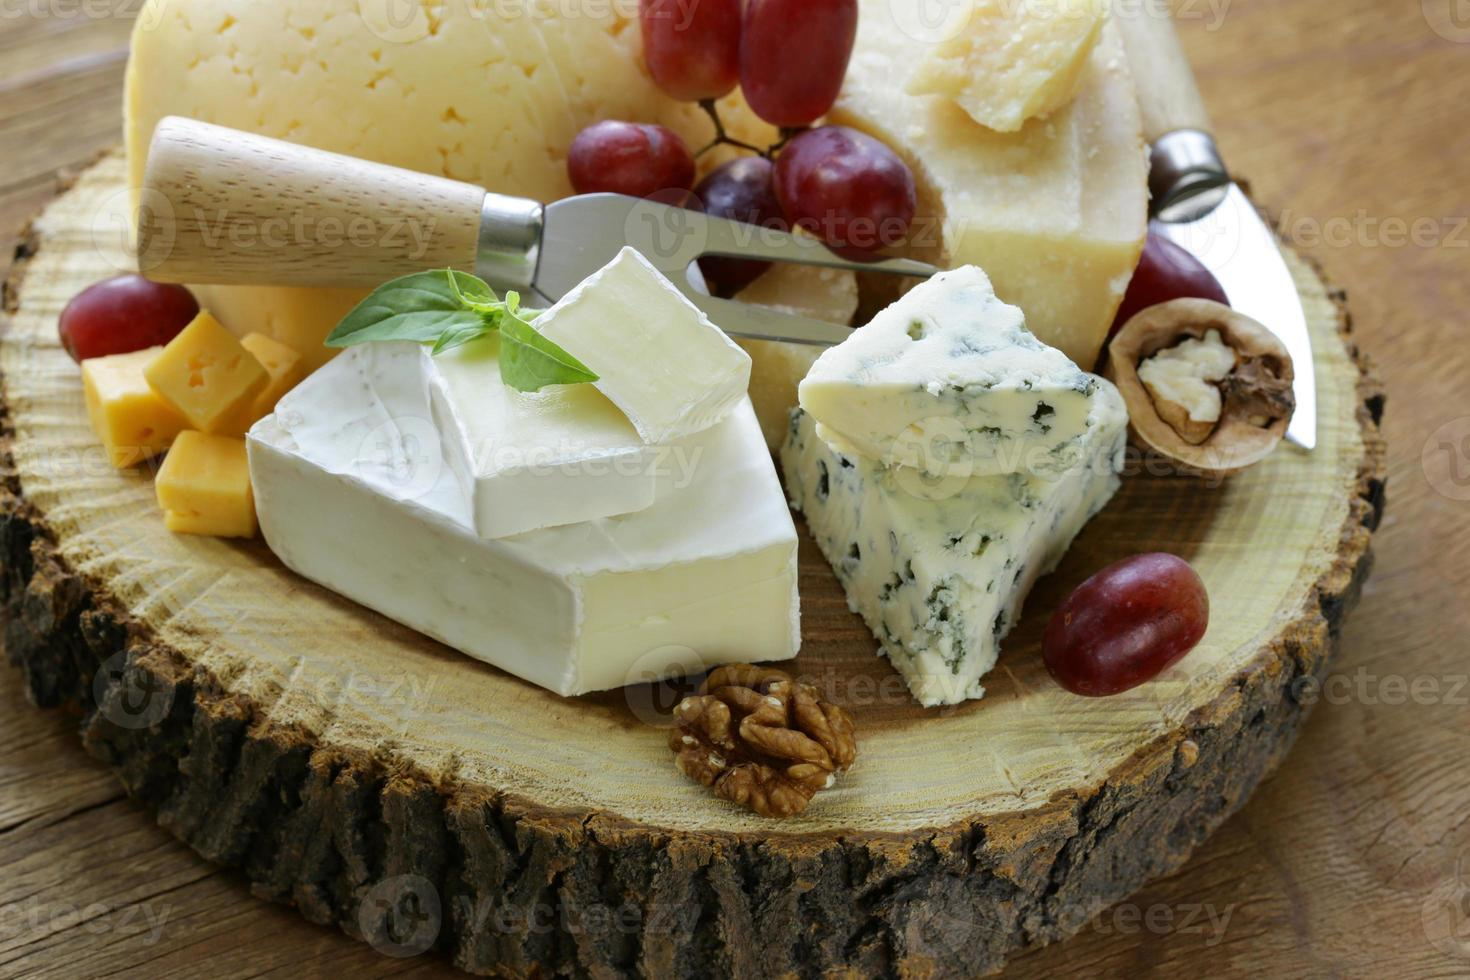 cheeseboard with assorted cheeses (parmesan, brie, blue, cheddar) photo